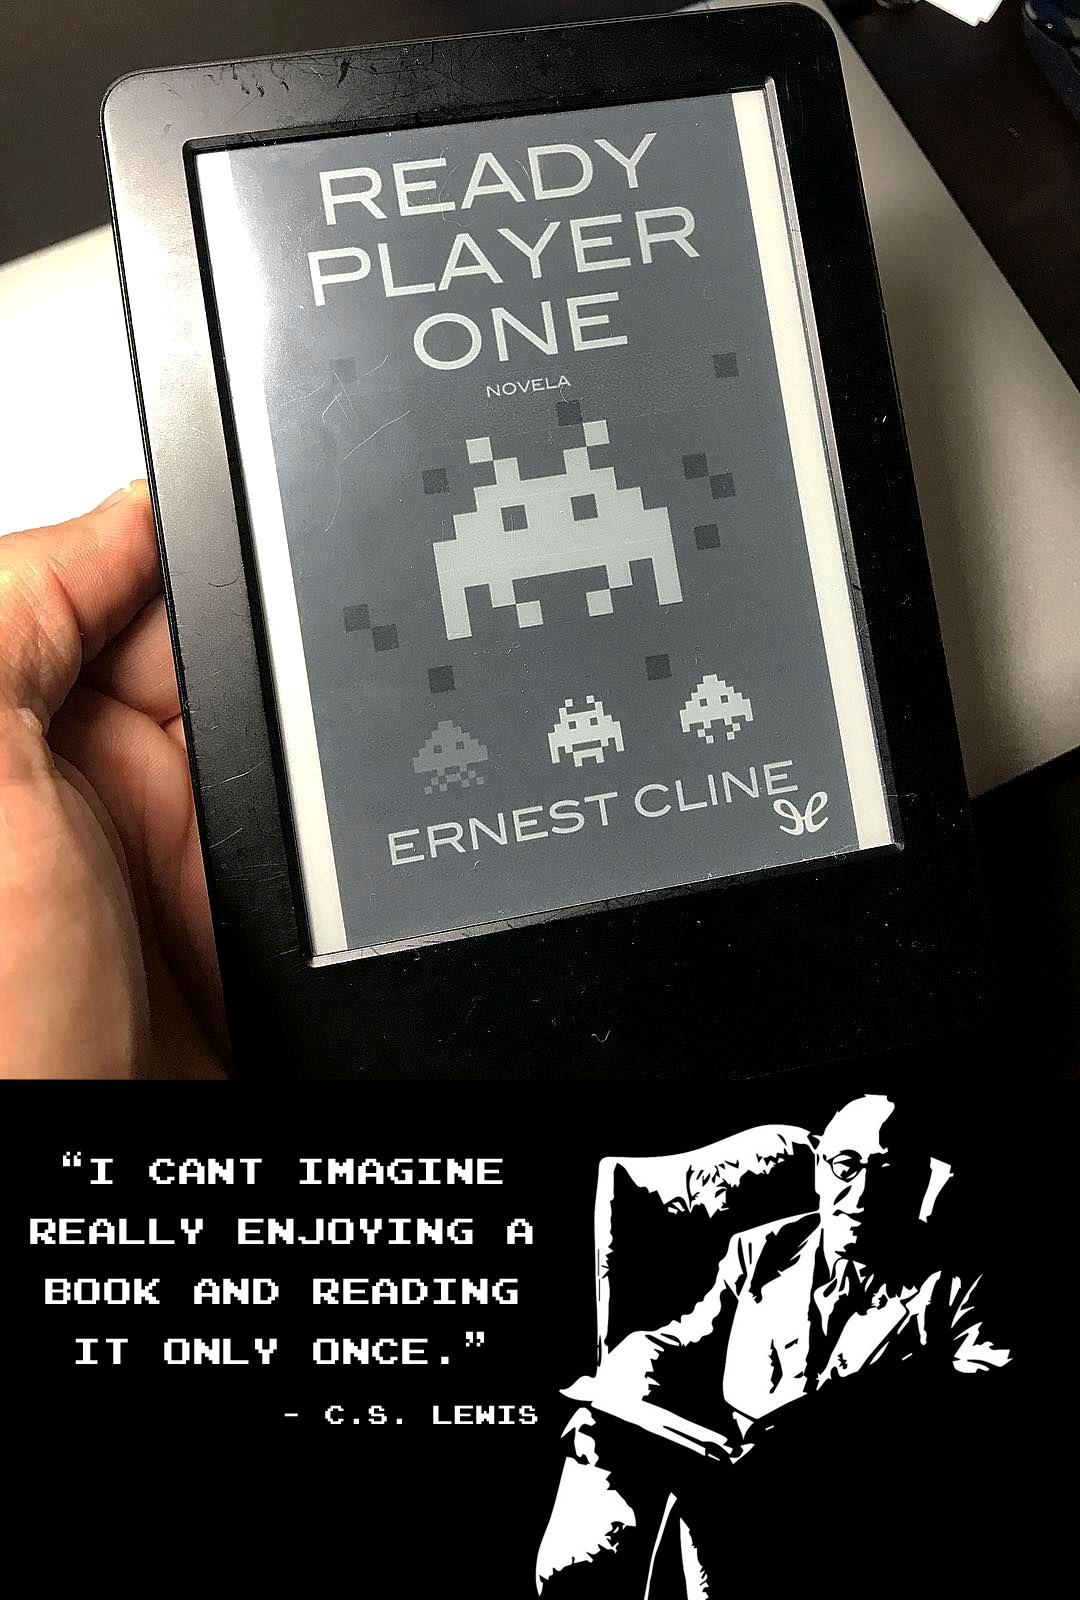 Ernest Cline's Ready Player One